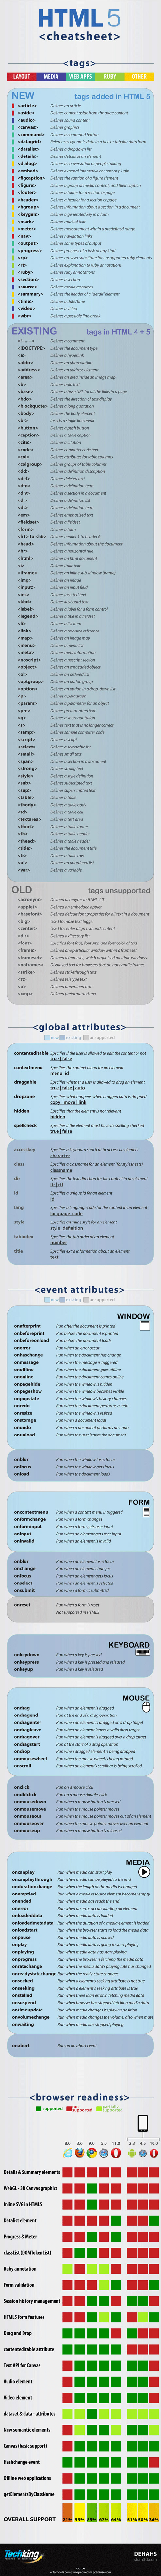 html5 cheat_sheet3